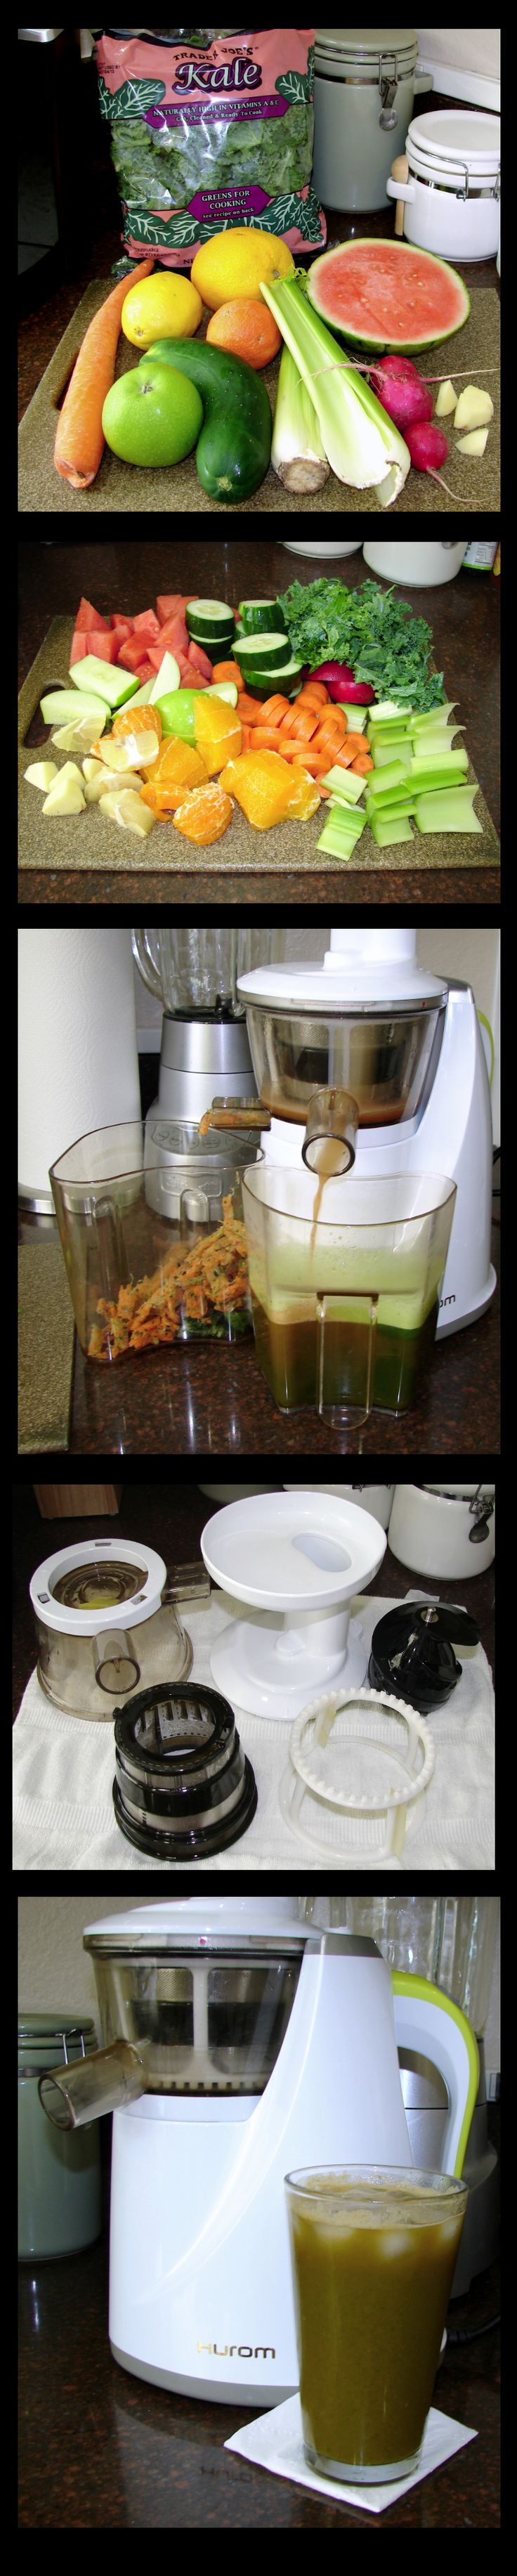 1000+ images about Best Juicer for Kale on Pinterest Kale, Apples and Best juicing recipes